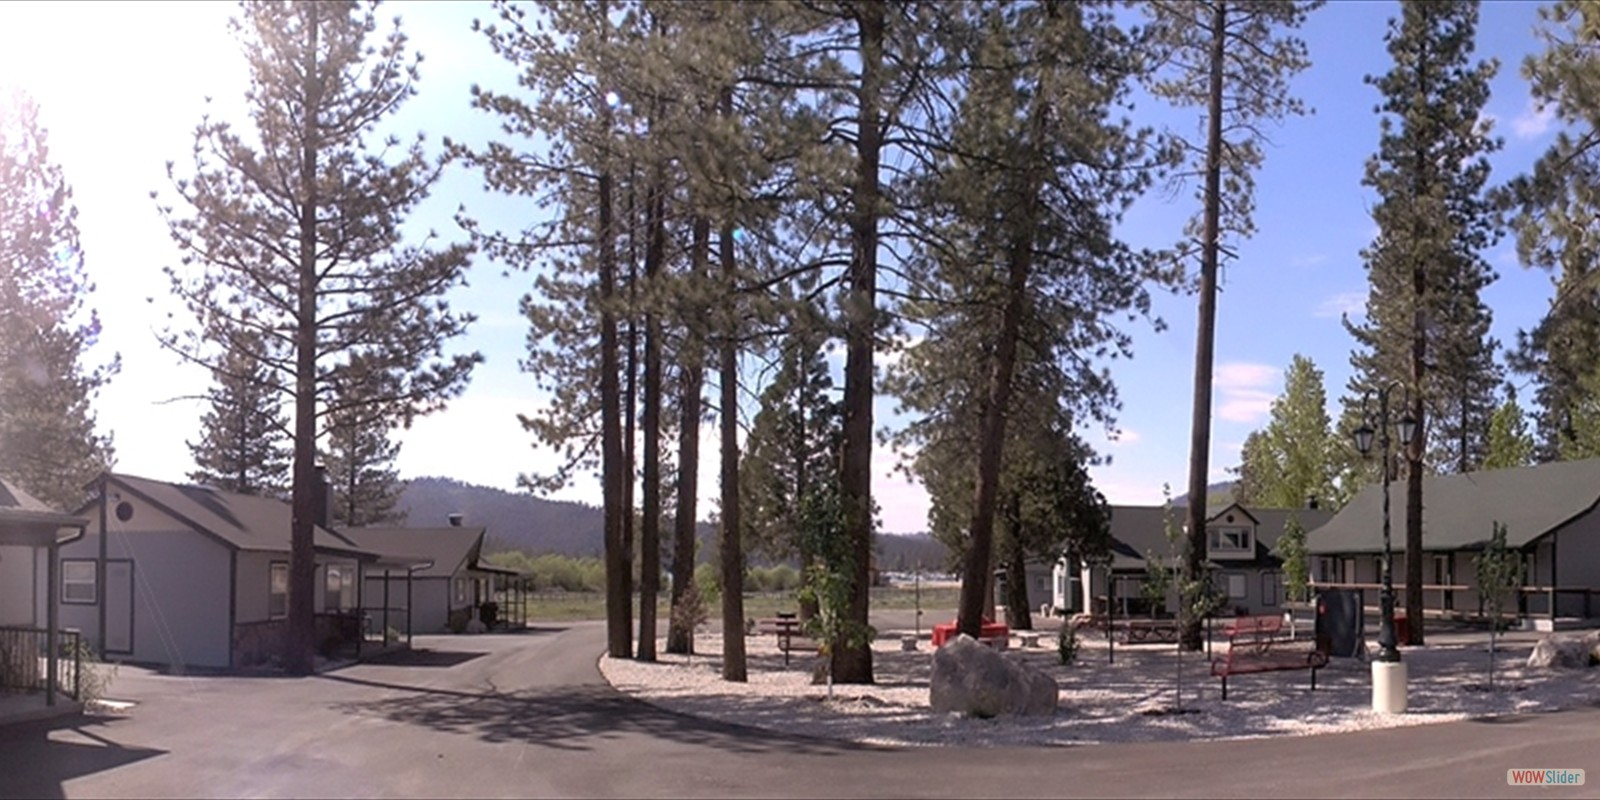 big bear lake dating What is teen dating violence  doves of big bear valley, inc 41943 big bear blvd big bear lake, ca 92315 doves is a 501(c)3 corporation email:.